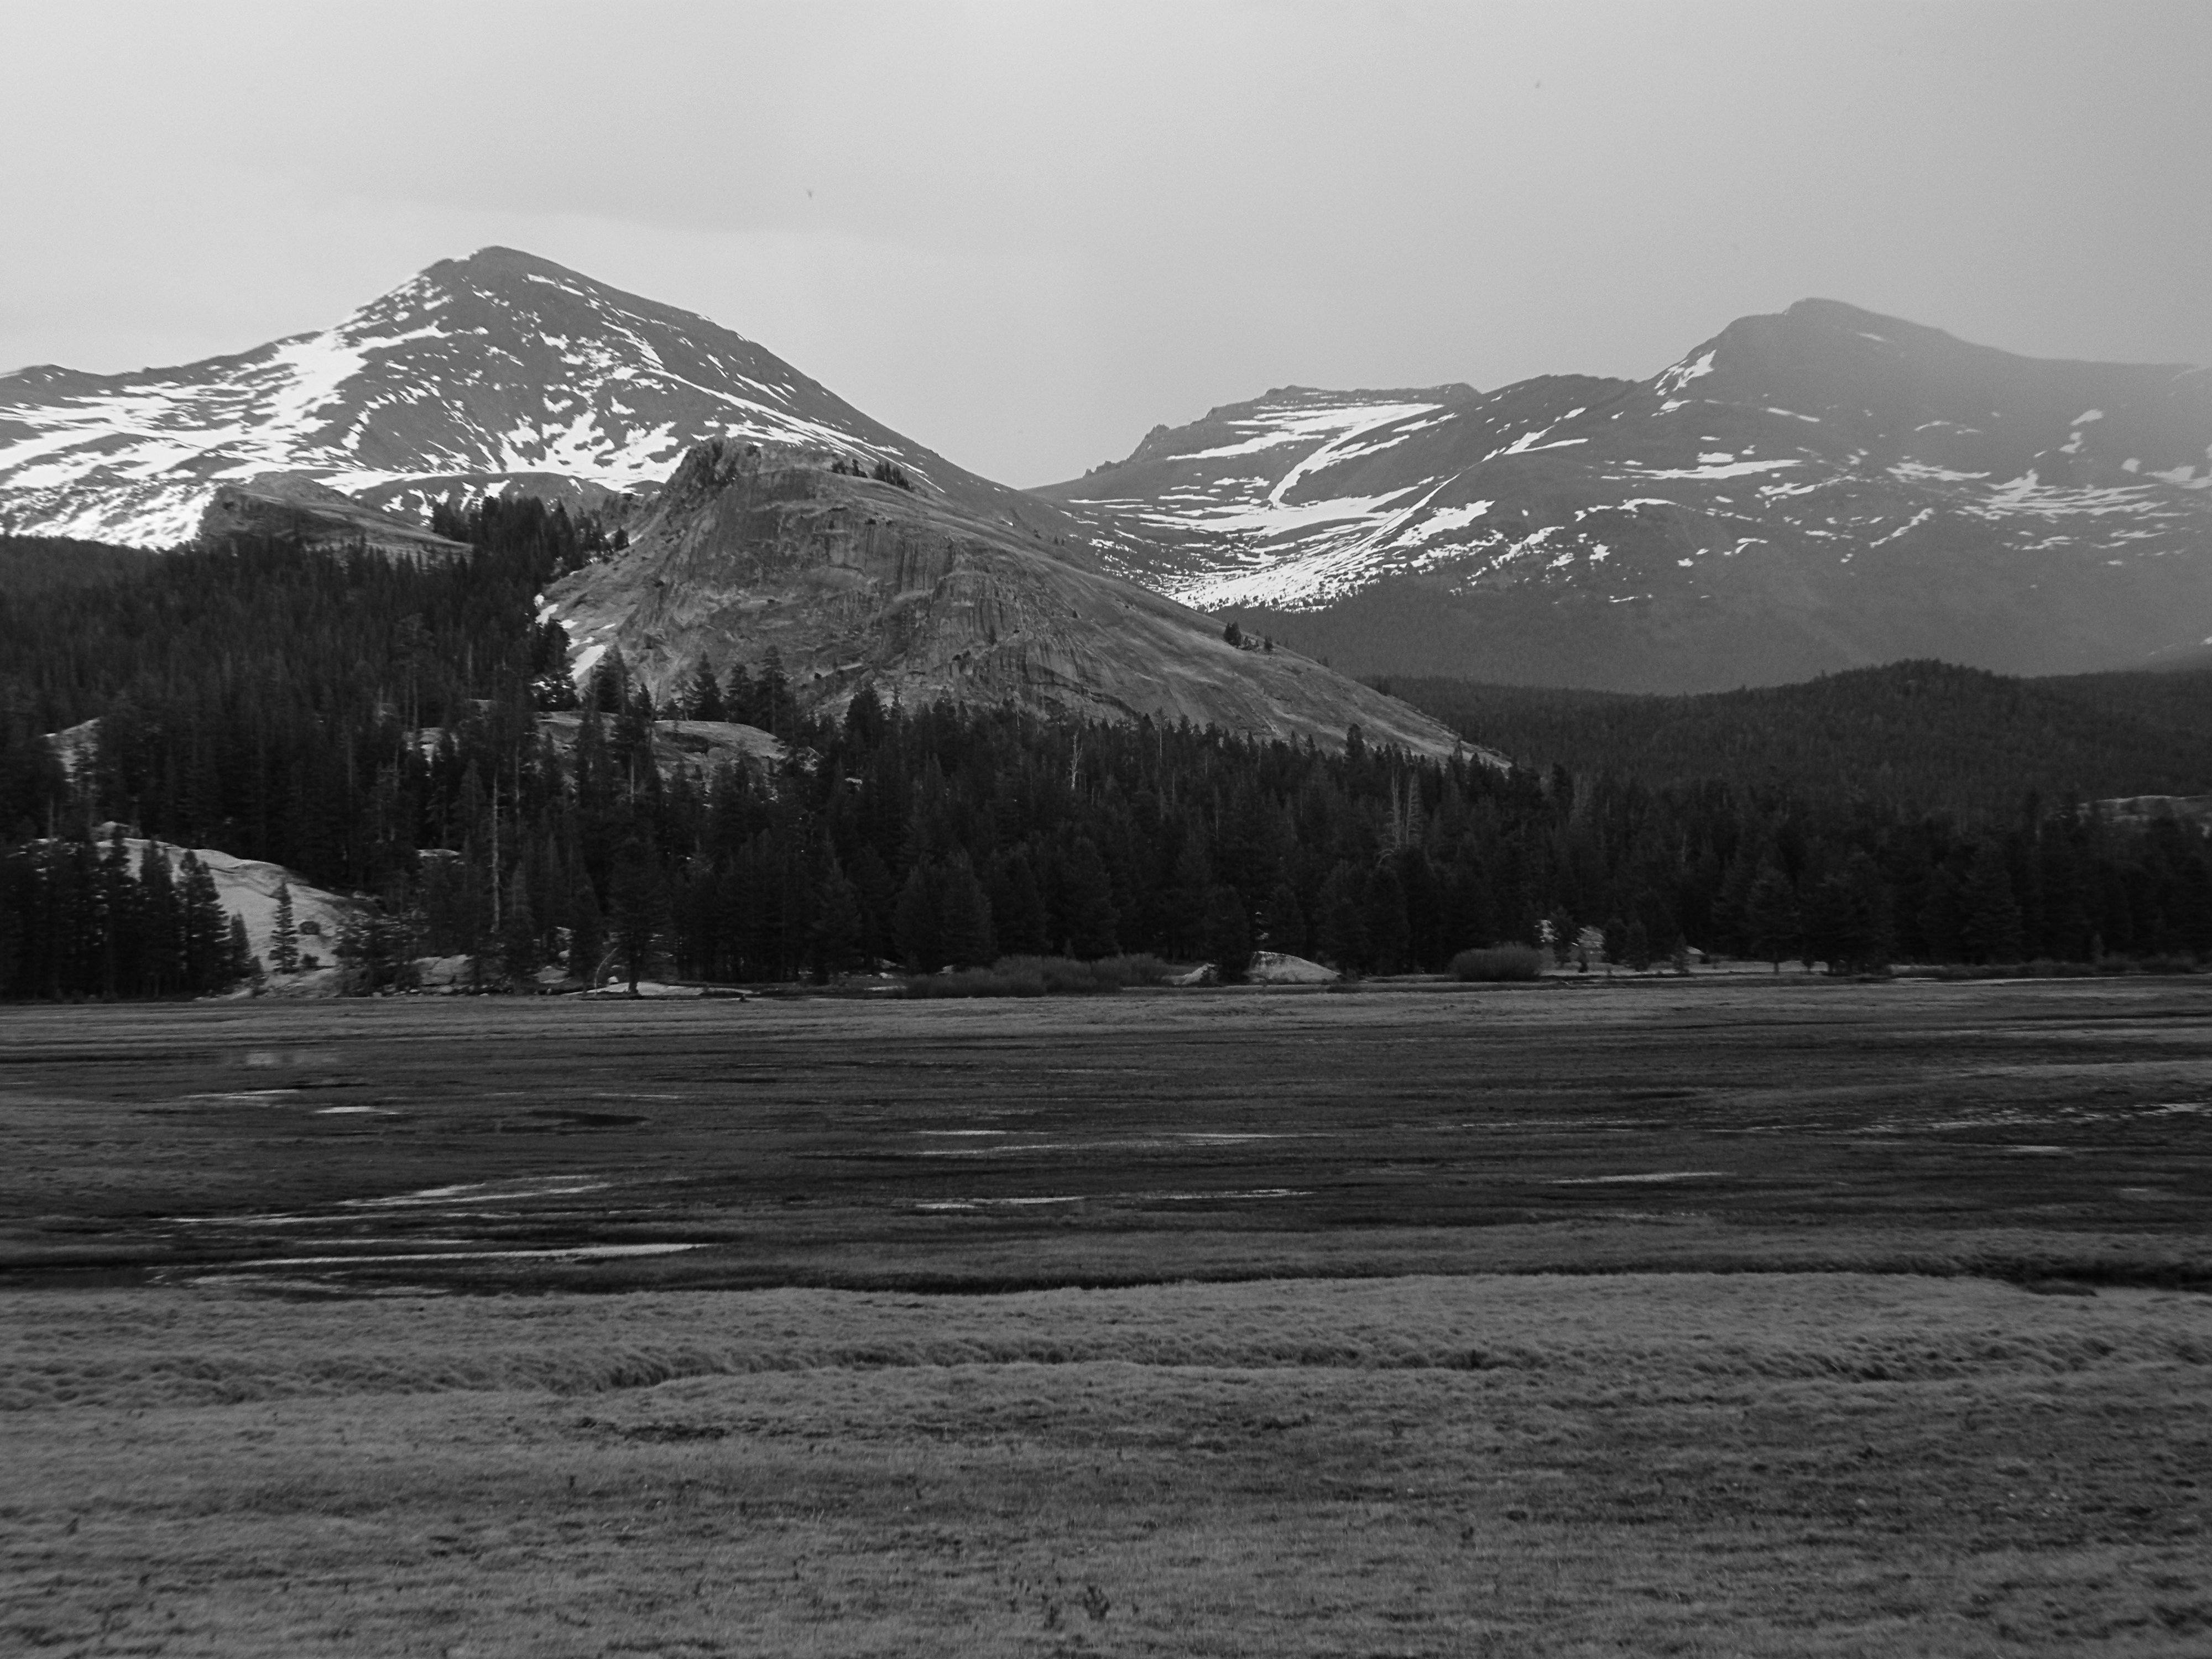 Rain at Tuolumne Meadows B&W